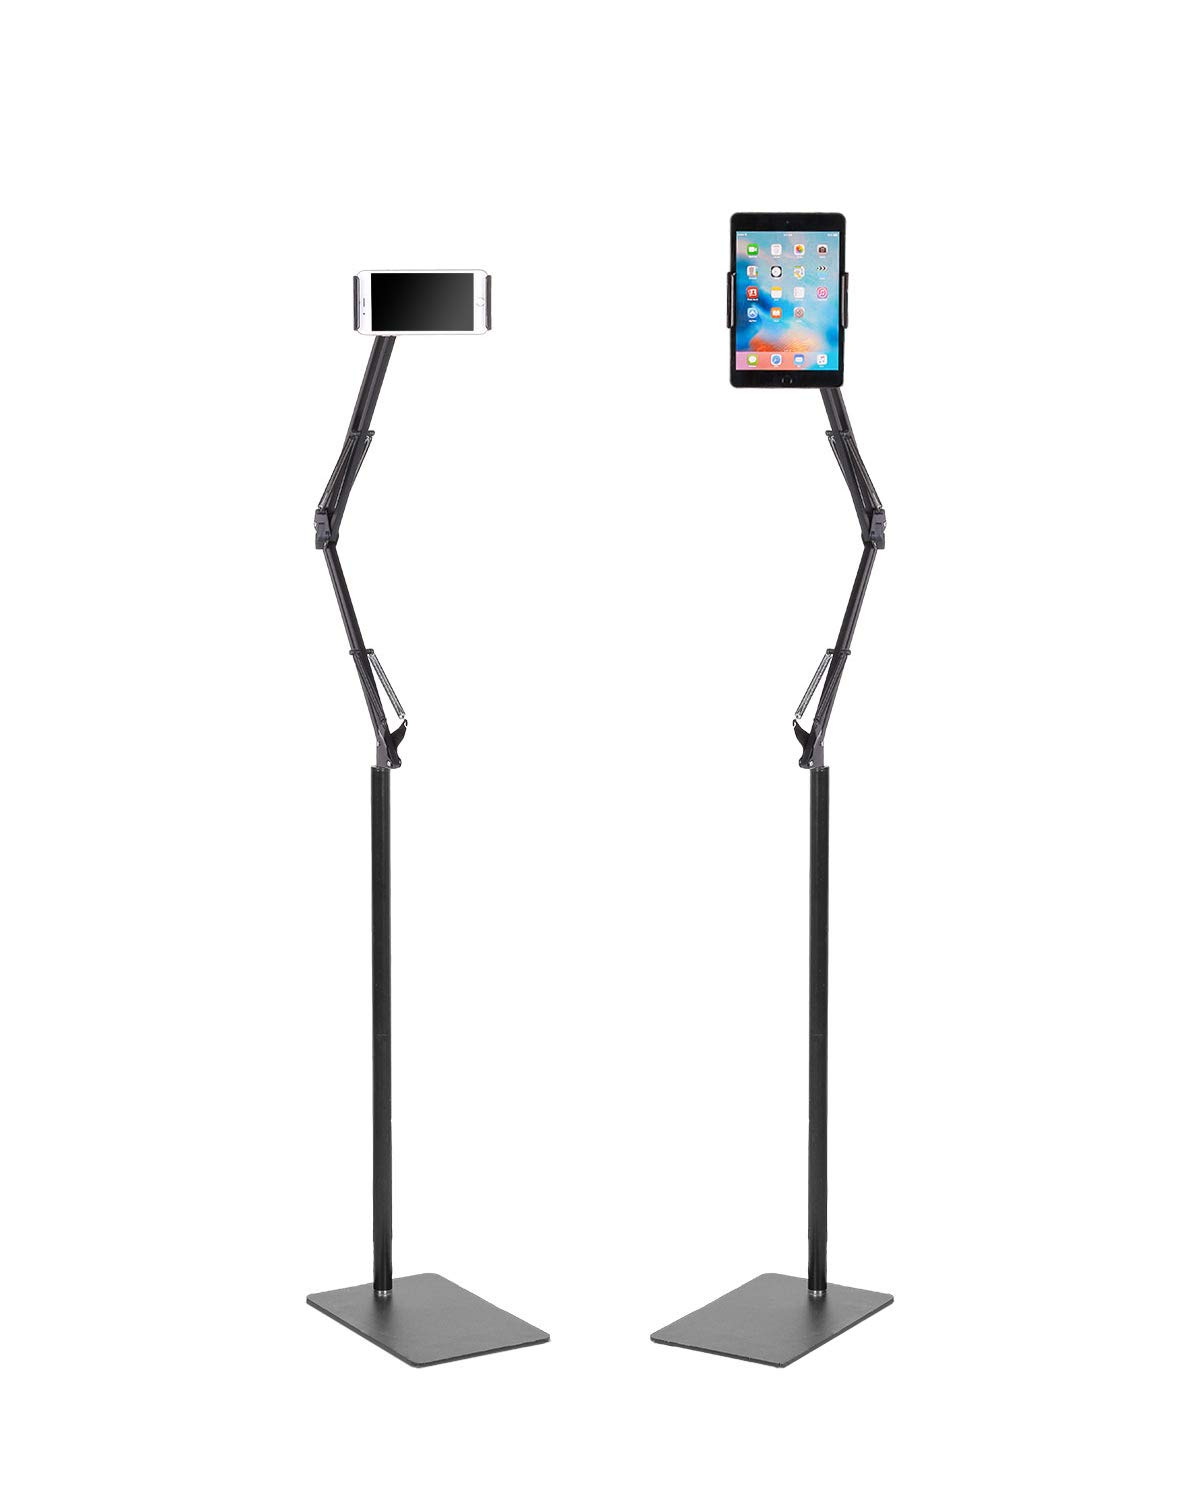 Kaforise Long Arm Floor Stand For Smartphone and Tablet, 360 Degree Adjustable Floor Stand Holder For 4.7''-10'' Phone , Black Maximum Height 55'' by Kaforise